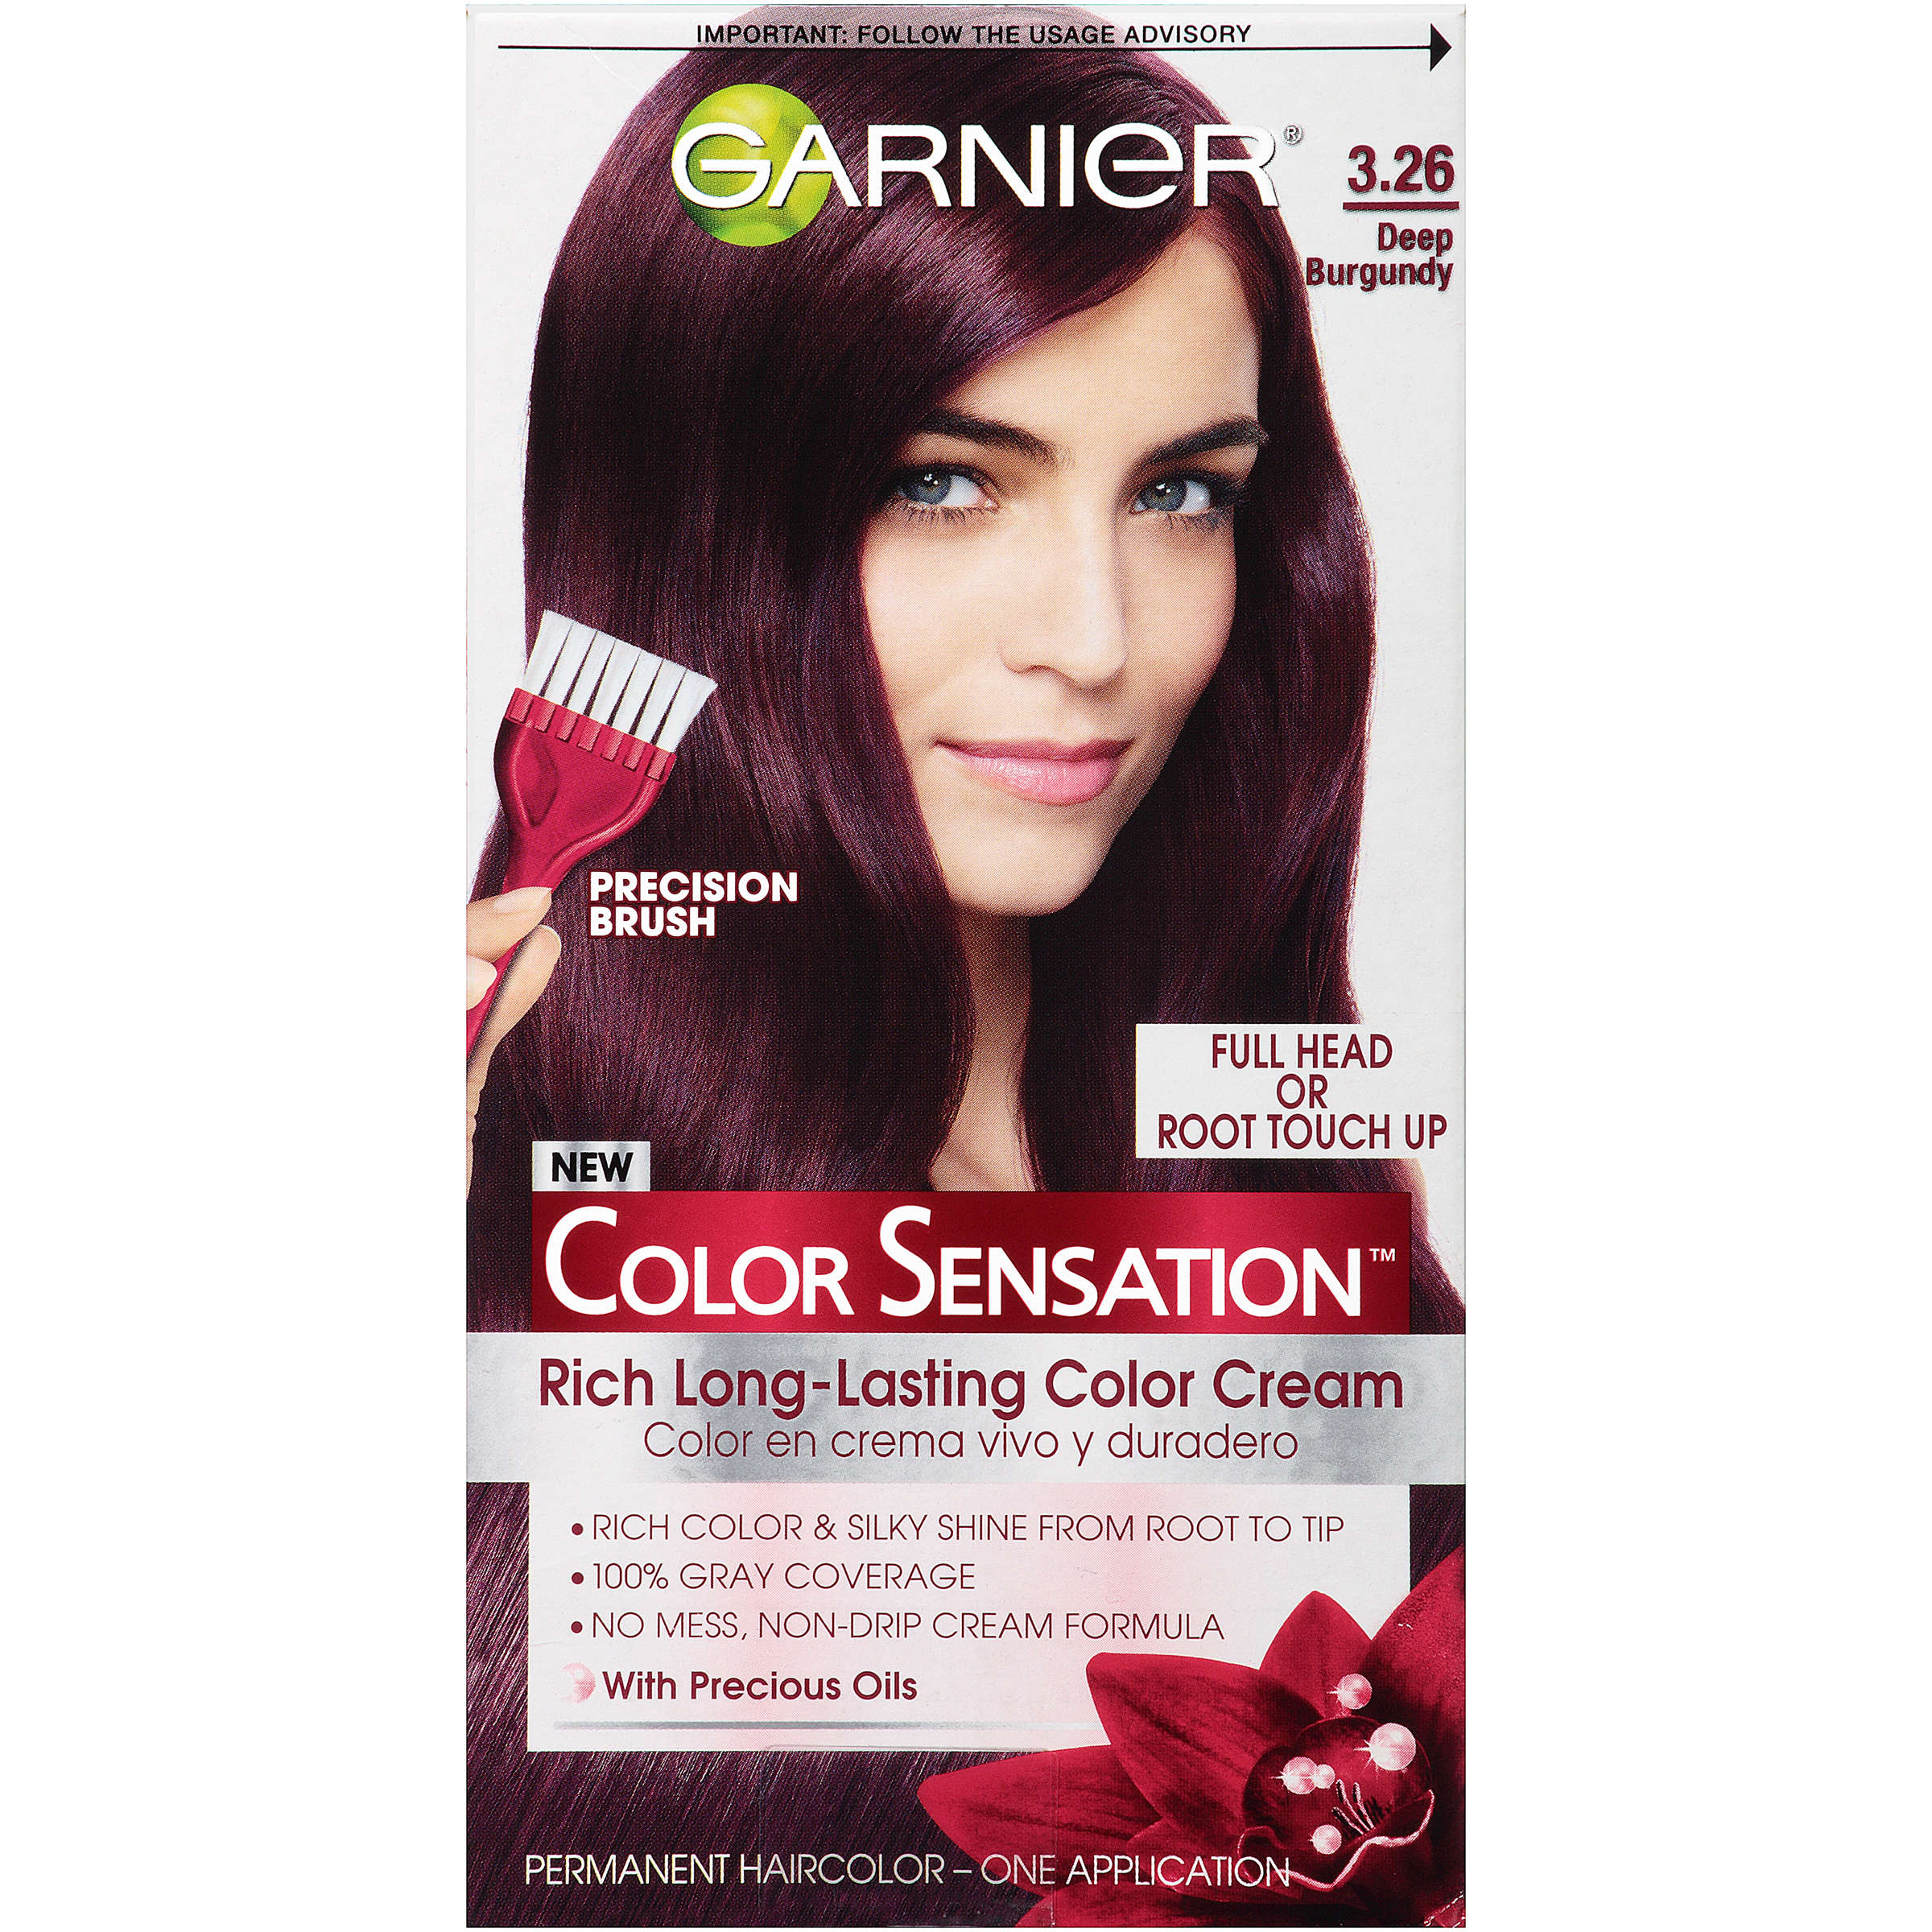 garnier color sensation permanent